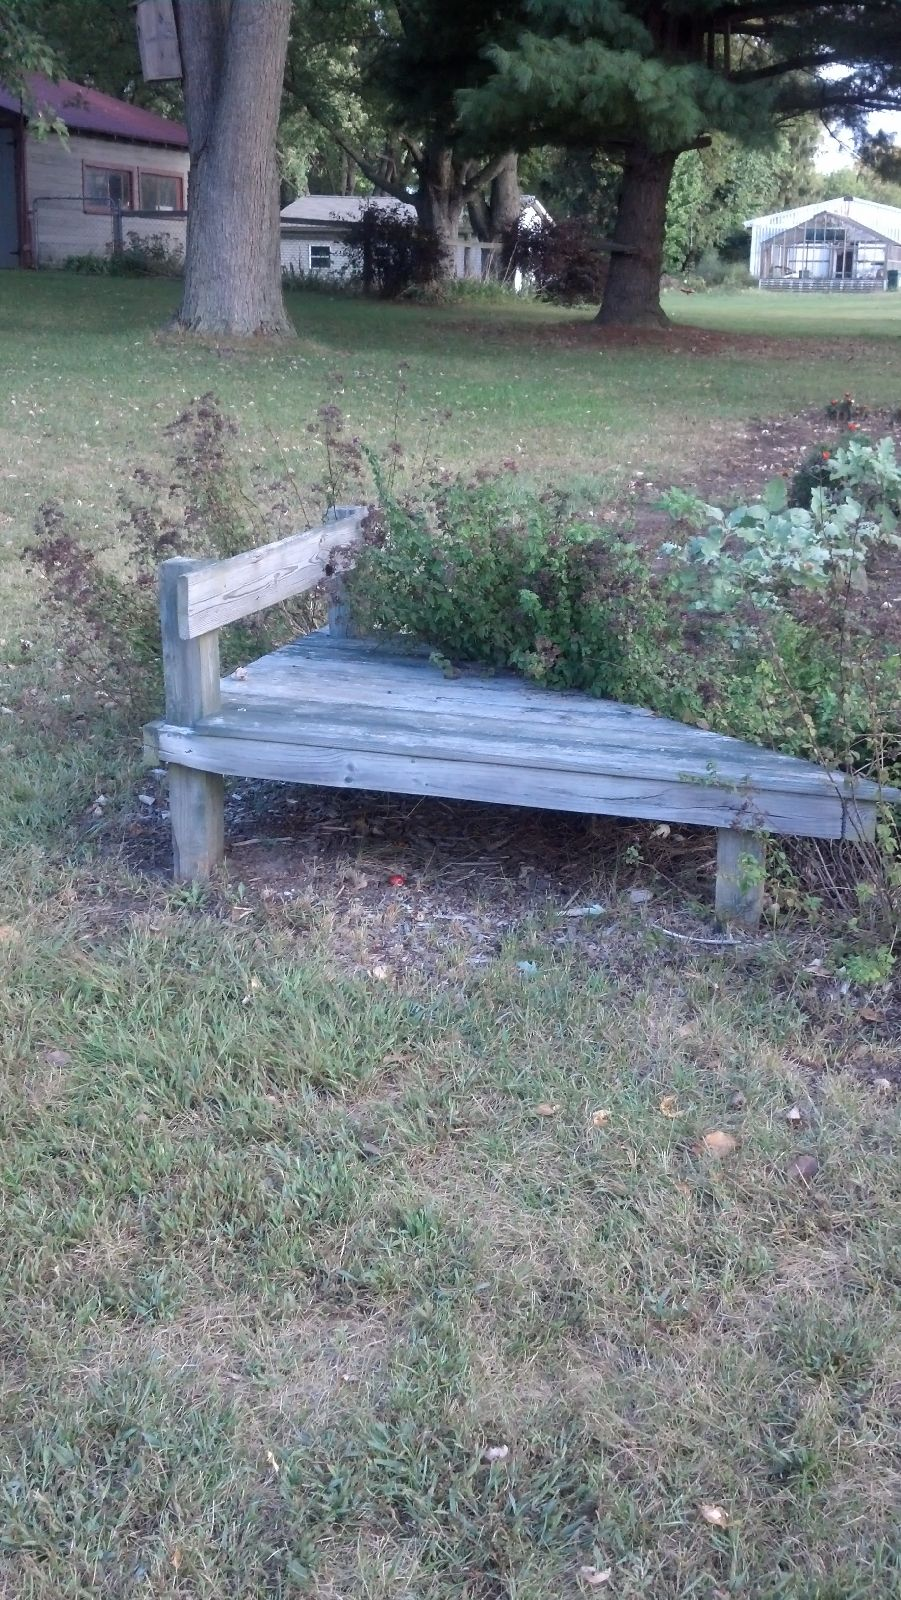 Attractive Another Garden Bench I Built. Great For Piling Produce To Keep My Dog Out Of